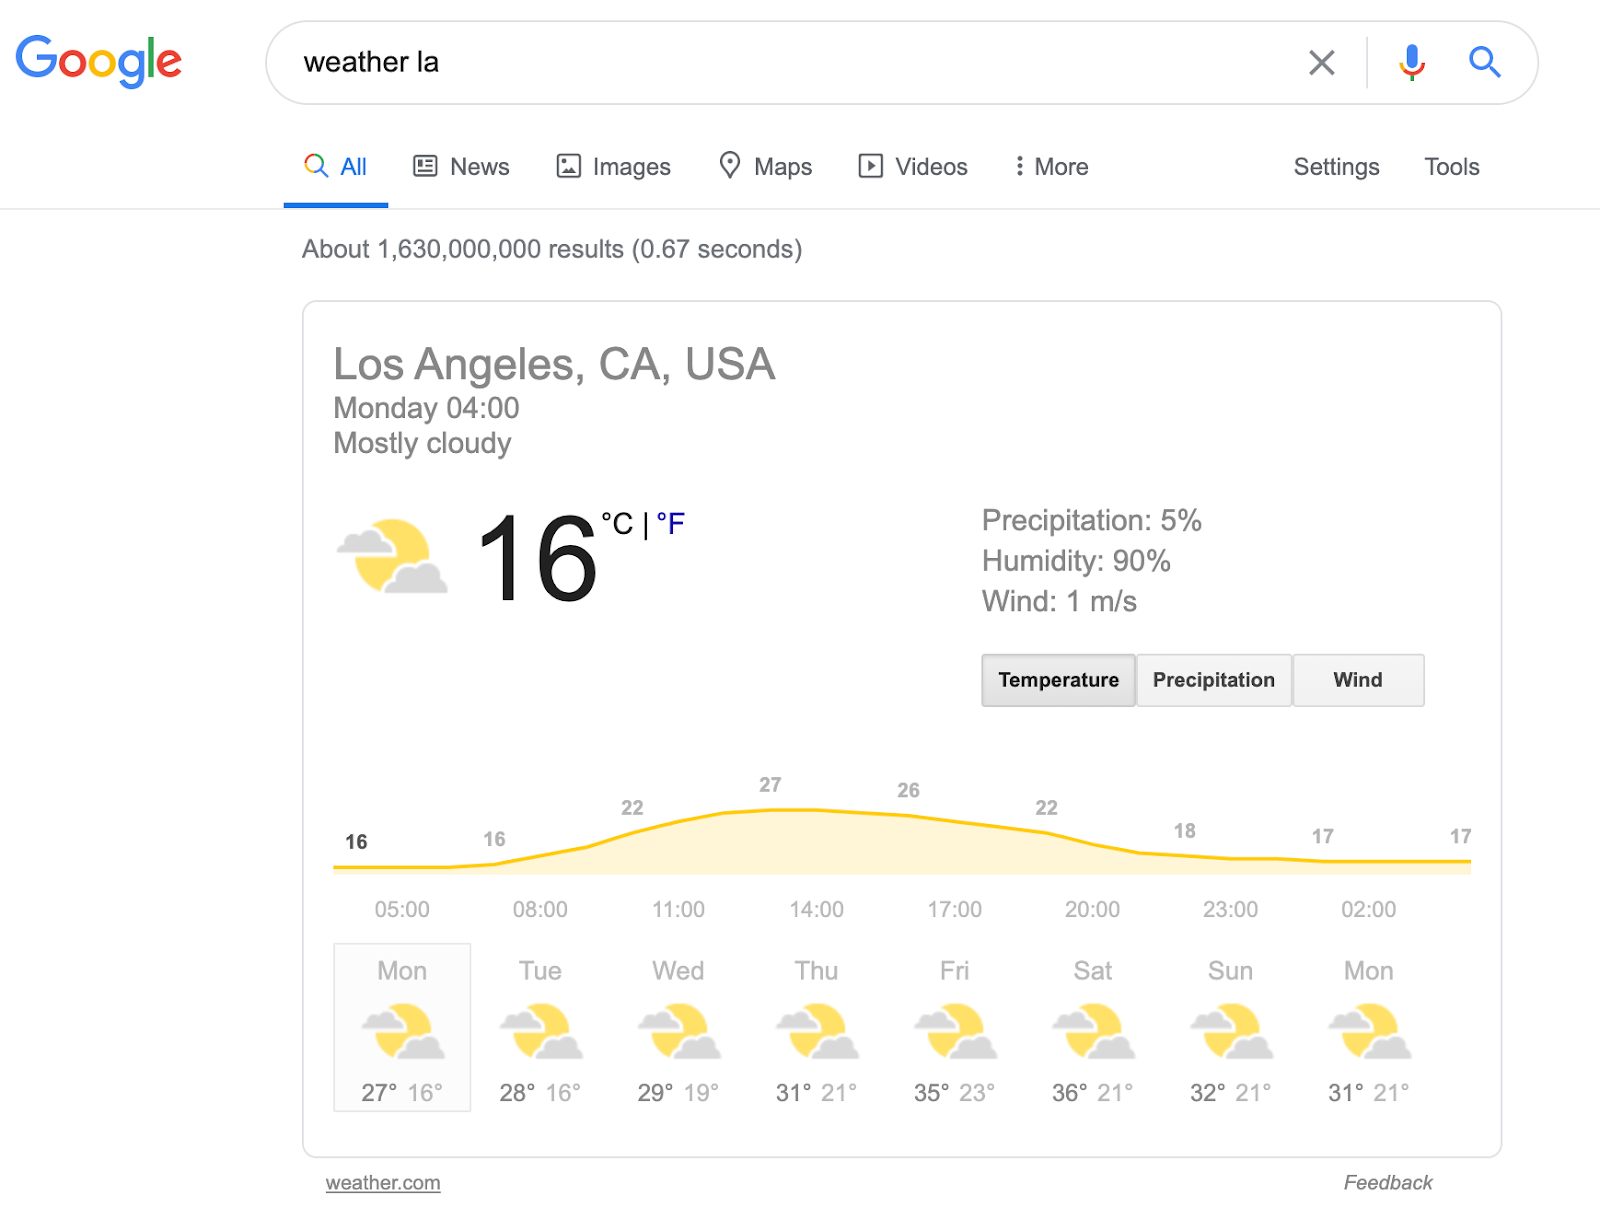 A weather widget on Google SERP